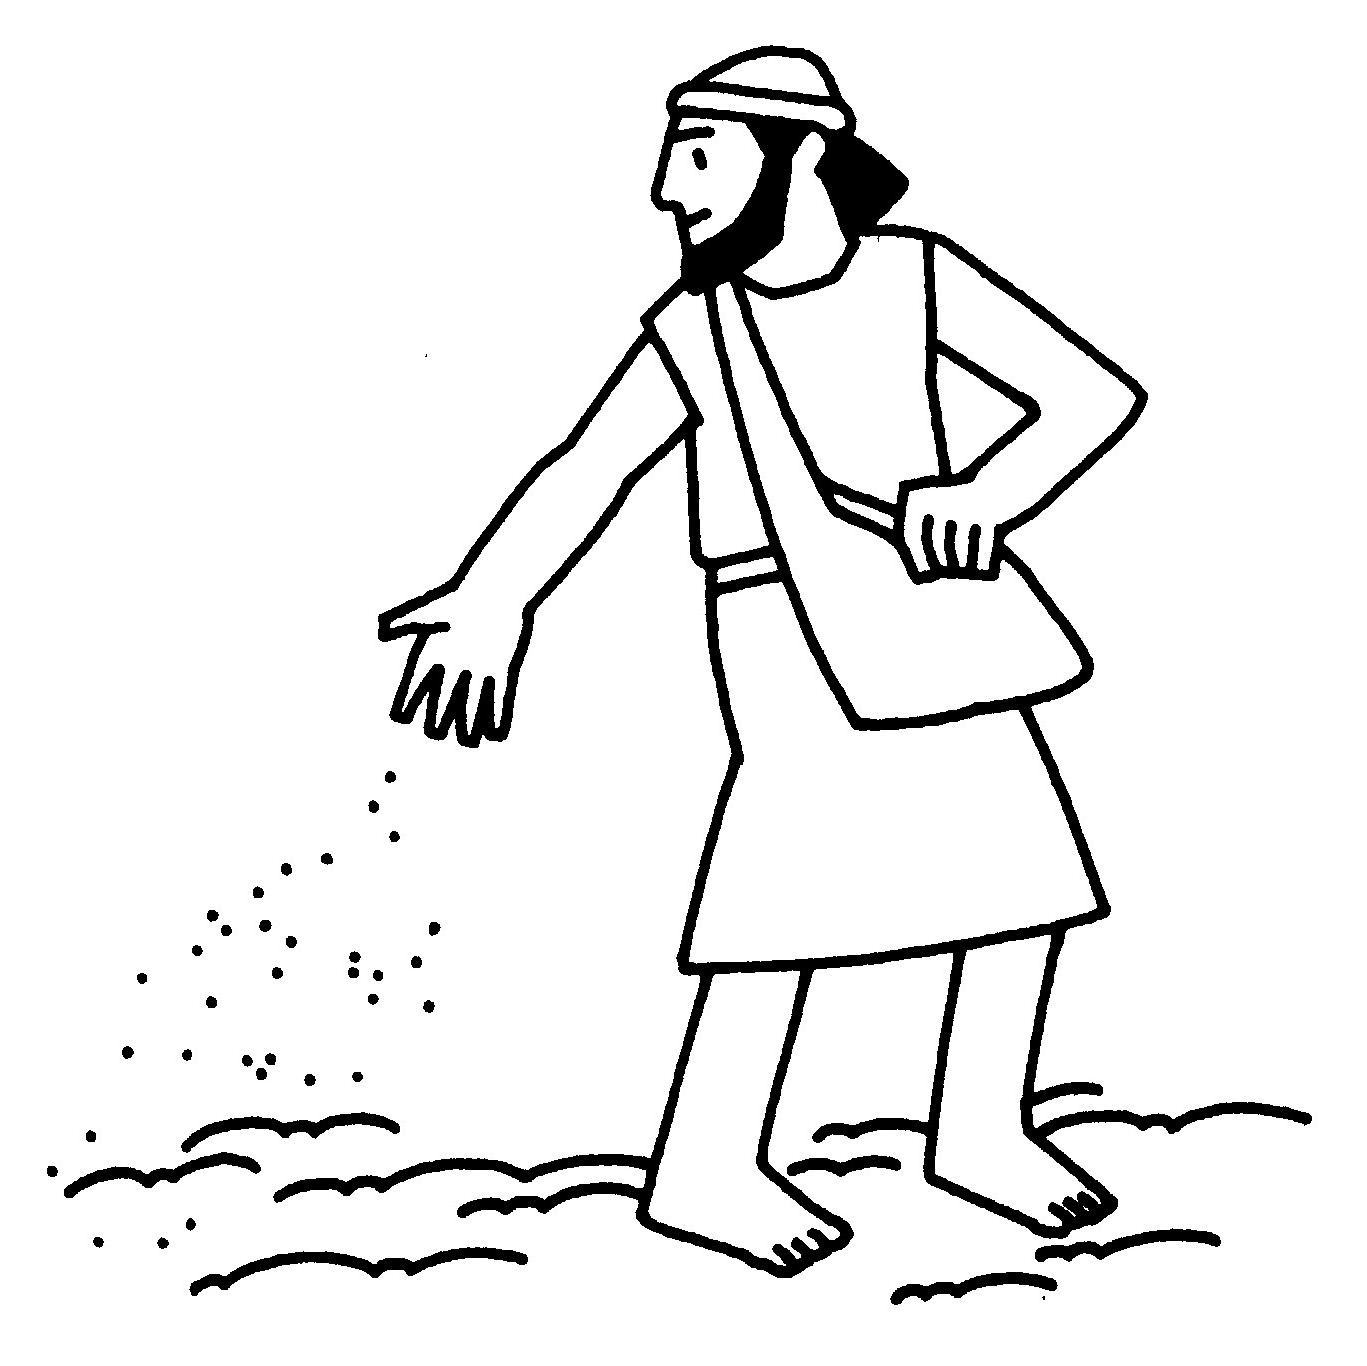 Parable Of A Sower And Seeds